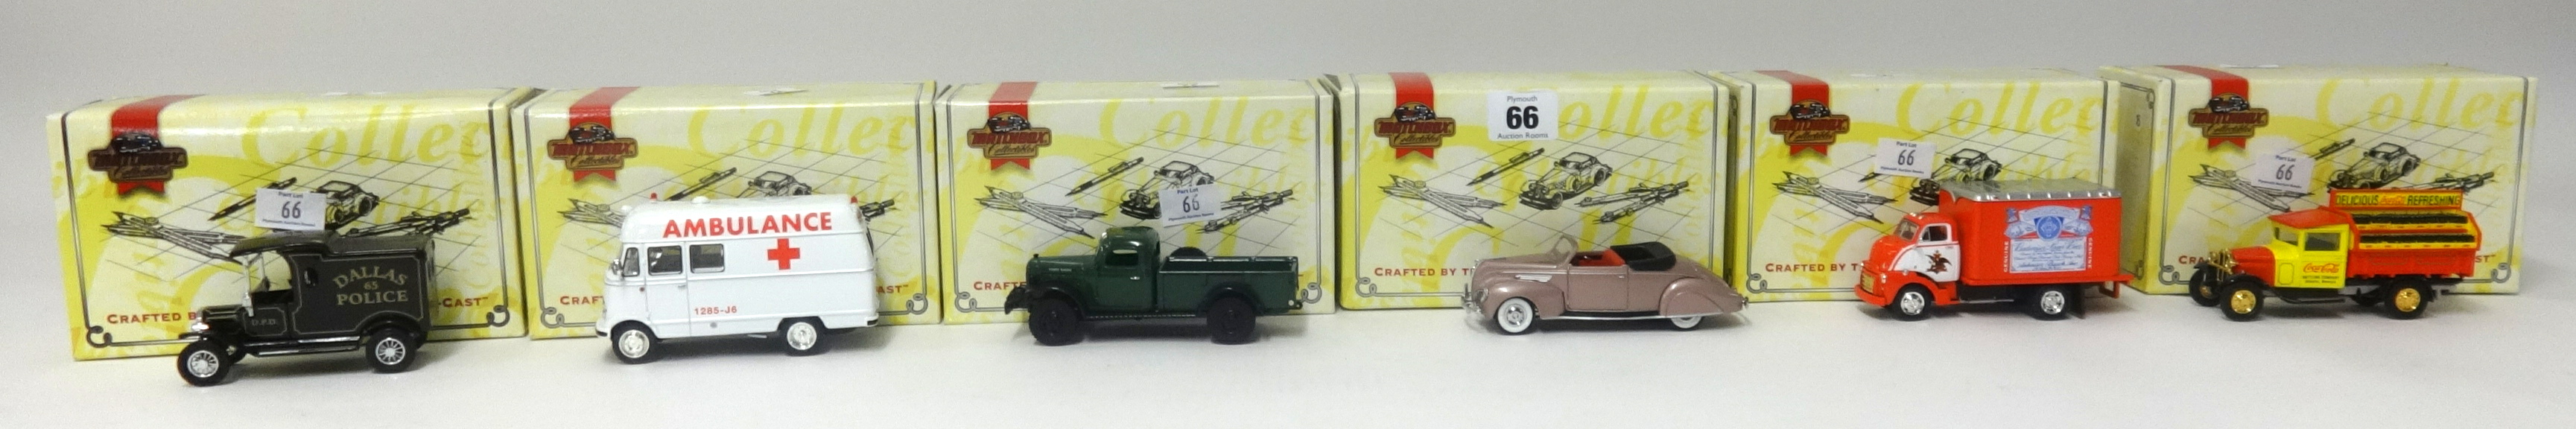 Lot 066 - A collection of Matchbox Collectables, boxed as new, Approx 30.